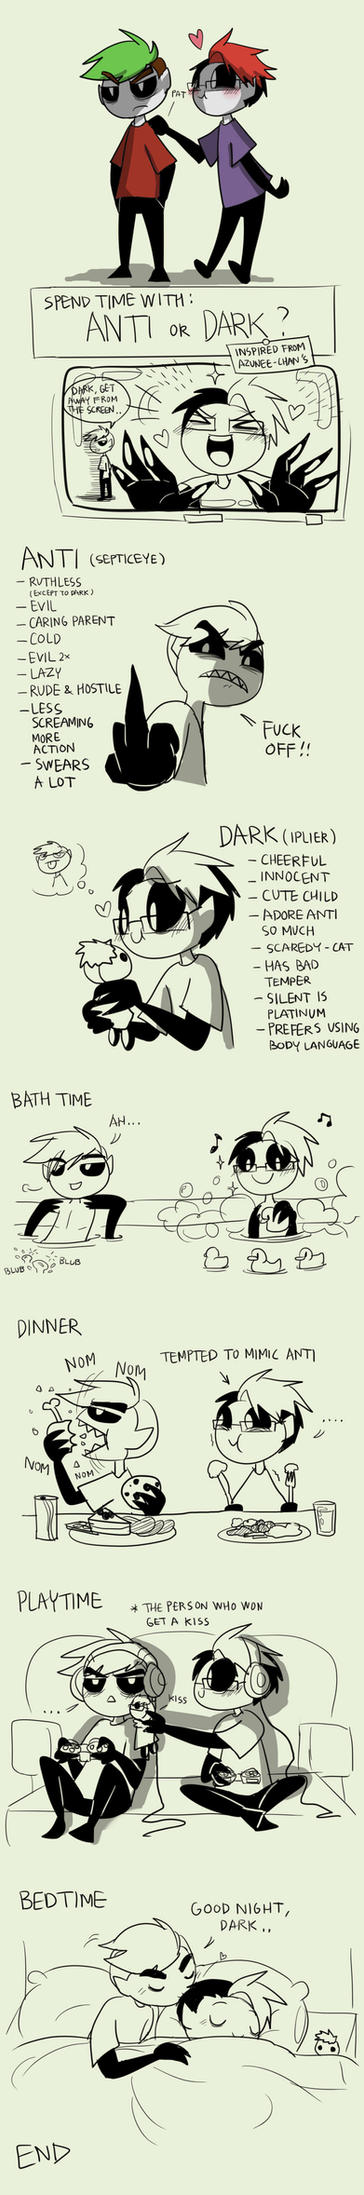 -meme- Spend time with...? by Vey-kun